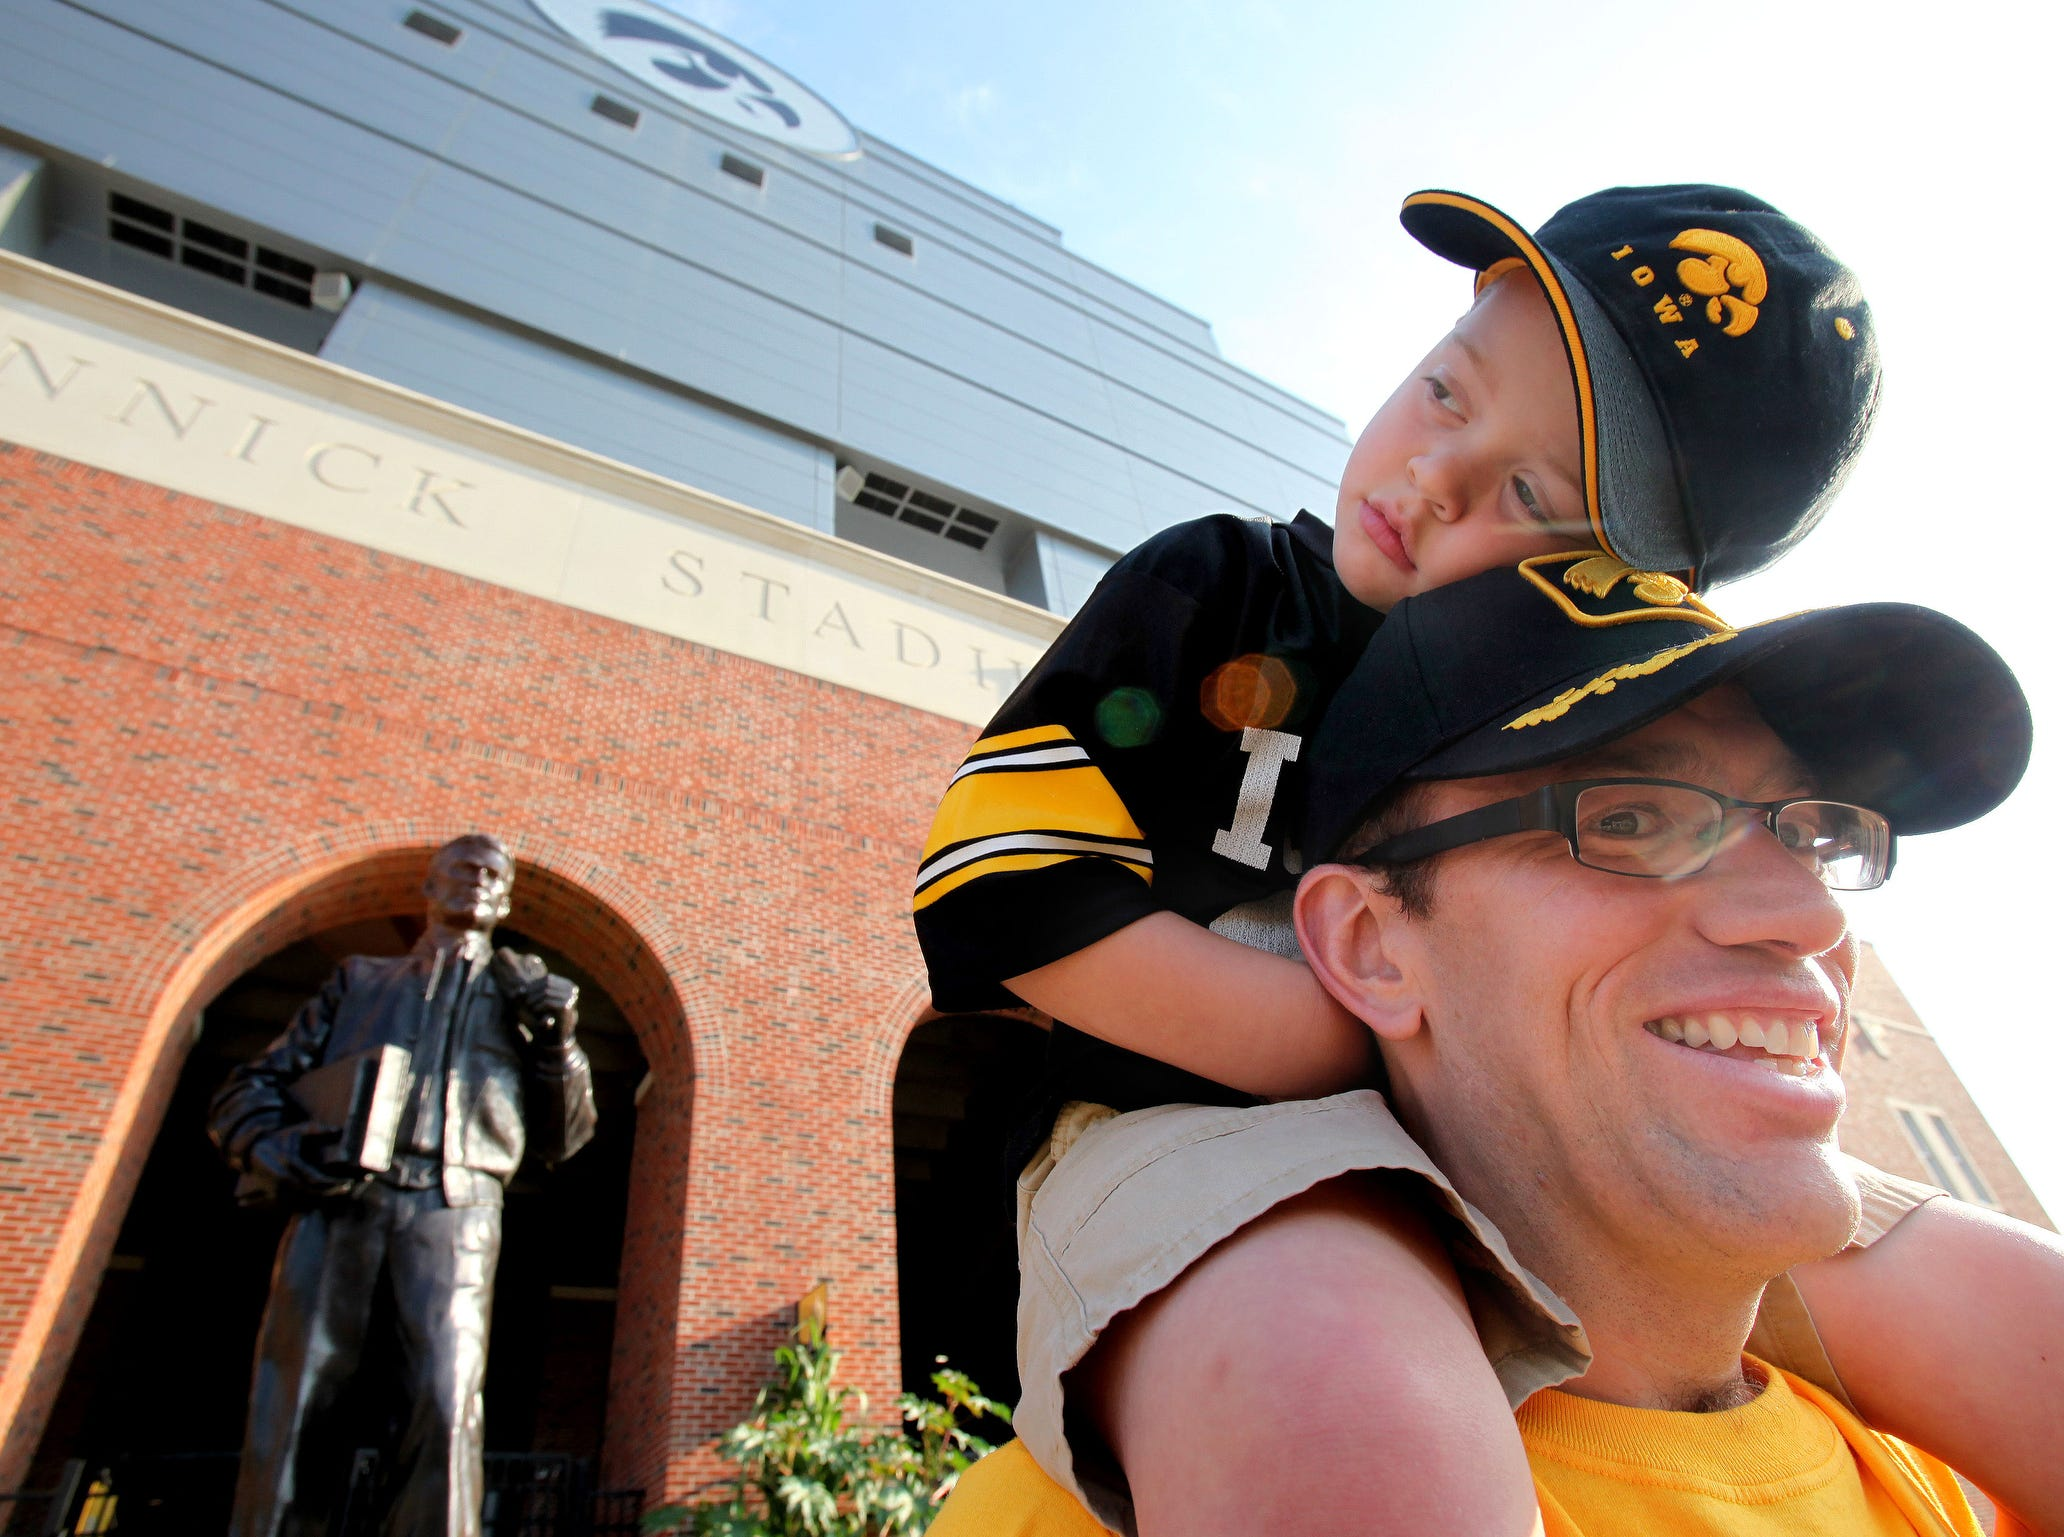 Iowa medical school graduate Mark Reese of Fort Collins, Colorado, gives his son, Caden, 4, a high perch outside Kinnick Stadium before Iowa's football season opener Sept. 5, 2009 against Northern Iowa  in Iowa City.